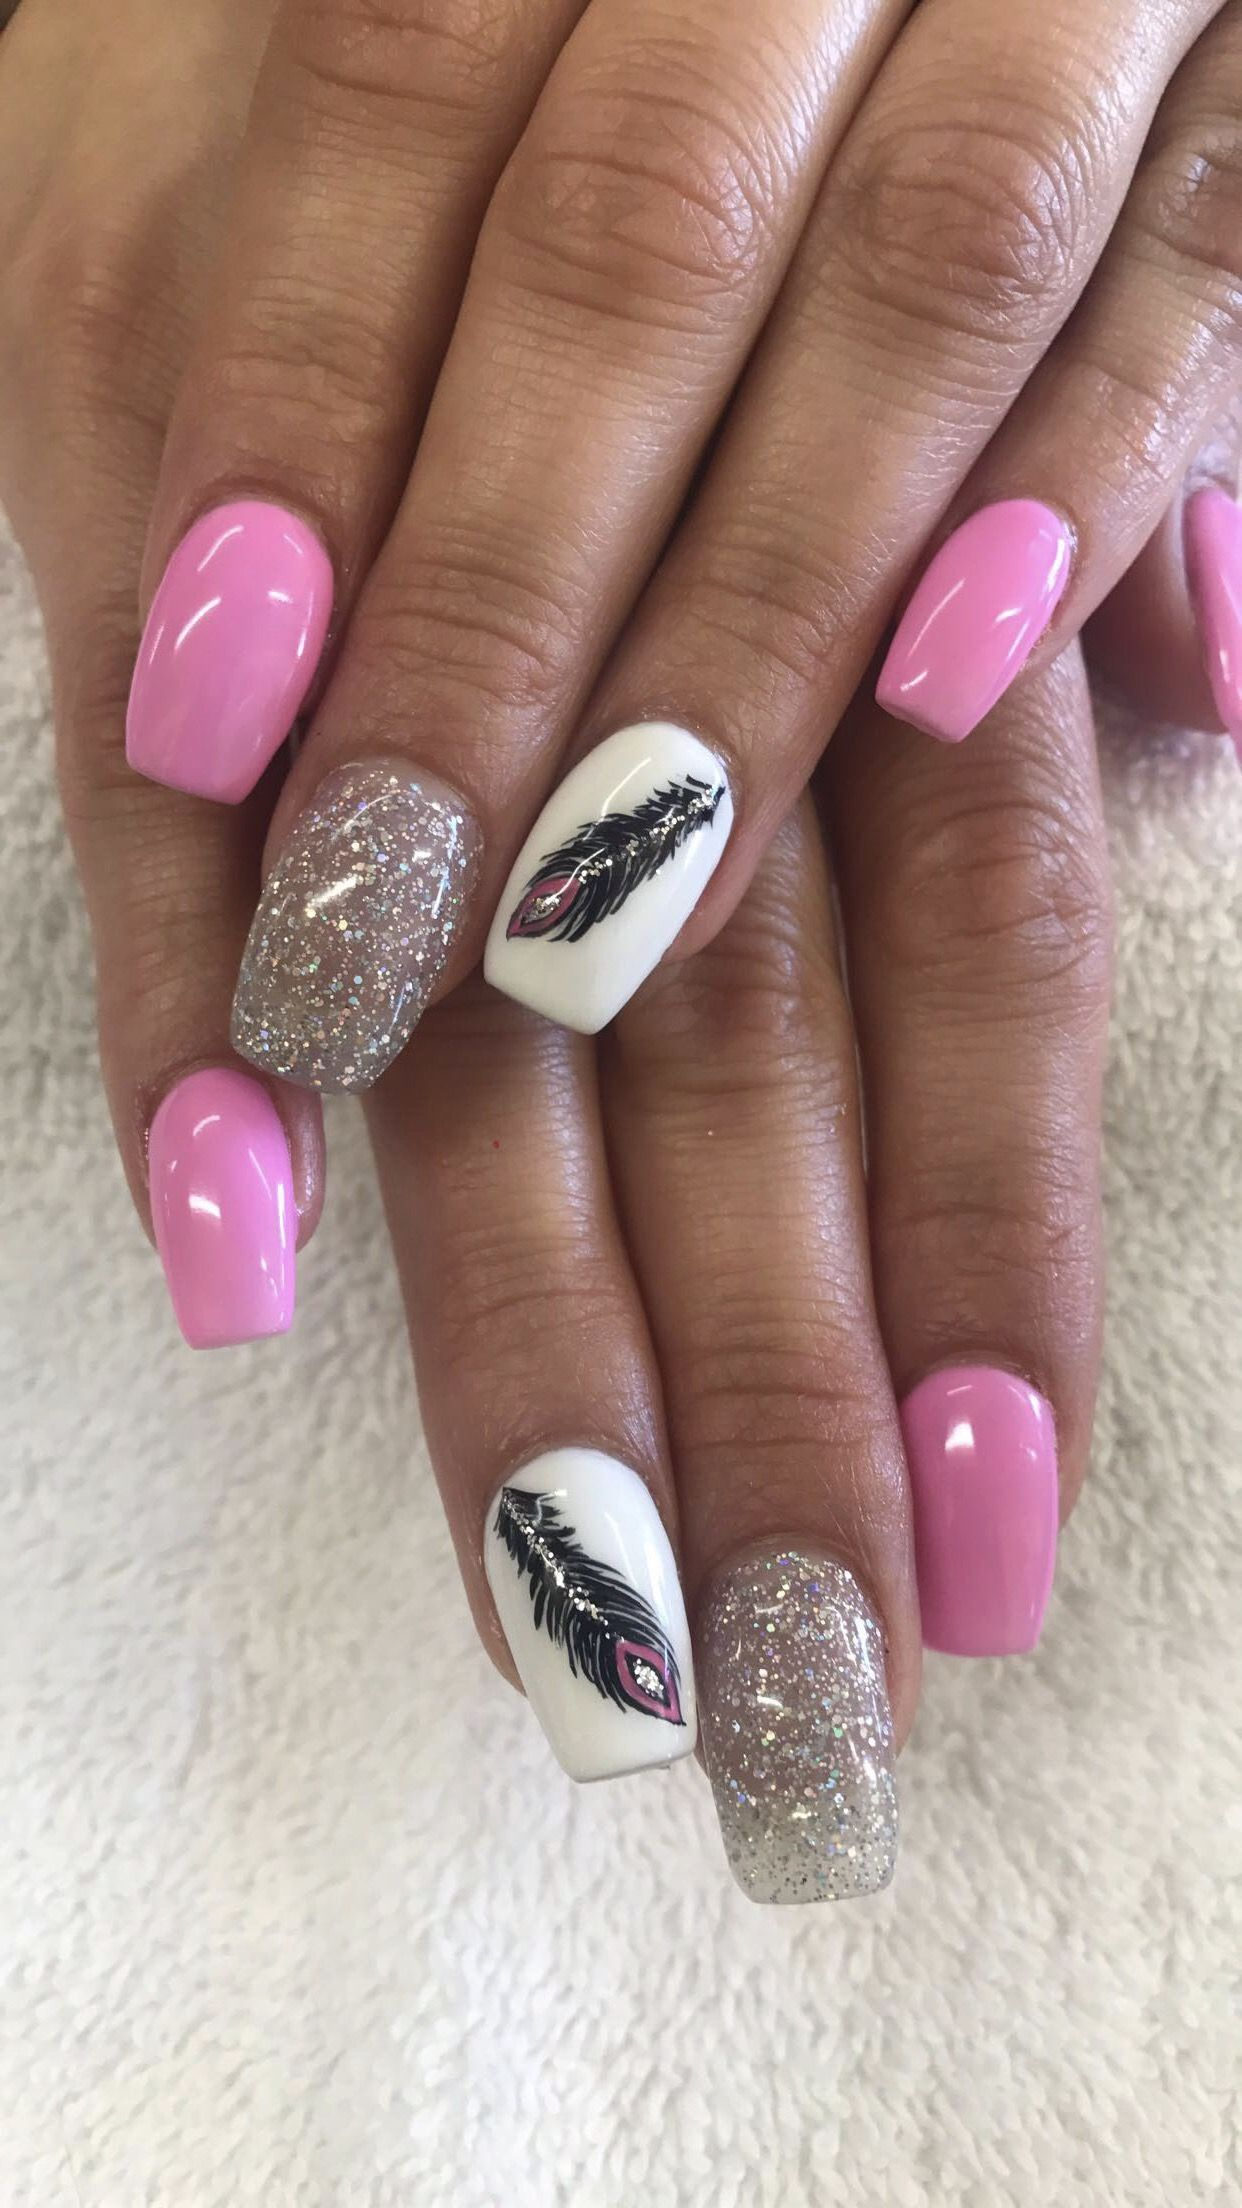 Pink Glitter White Shellac Acrylic Nails With Feather Design Nail